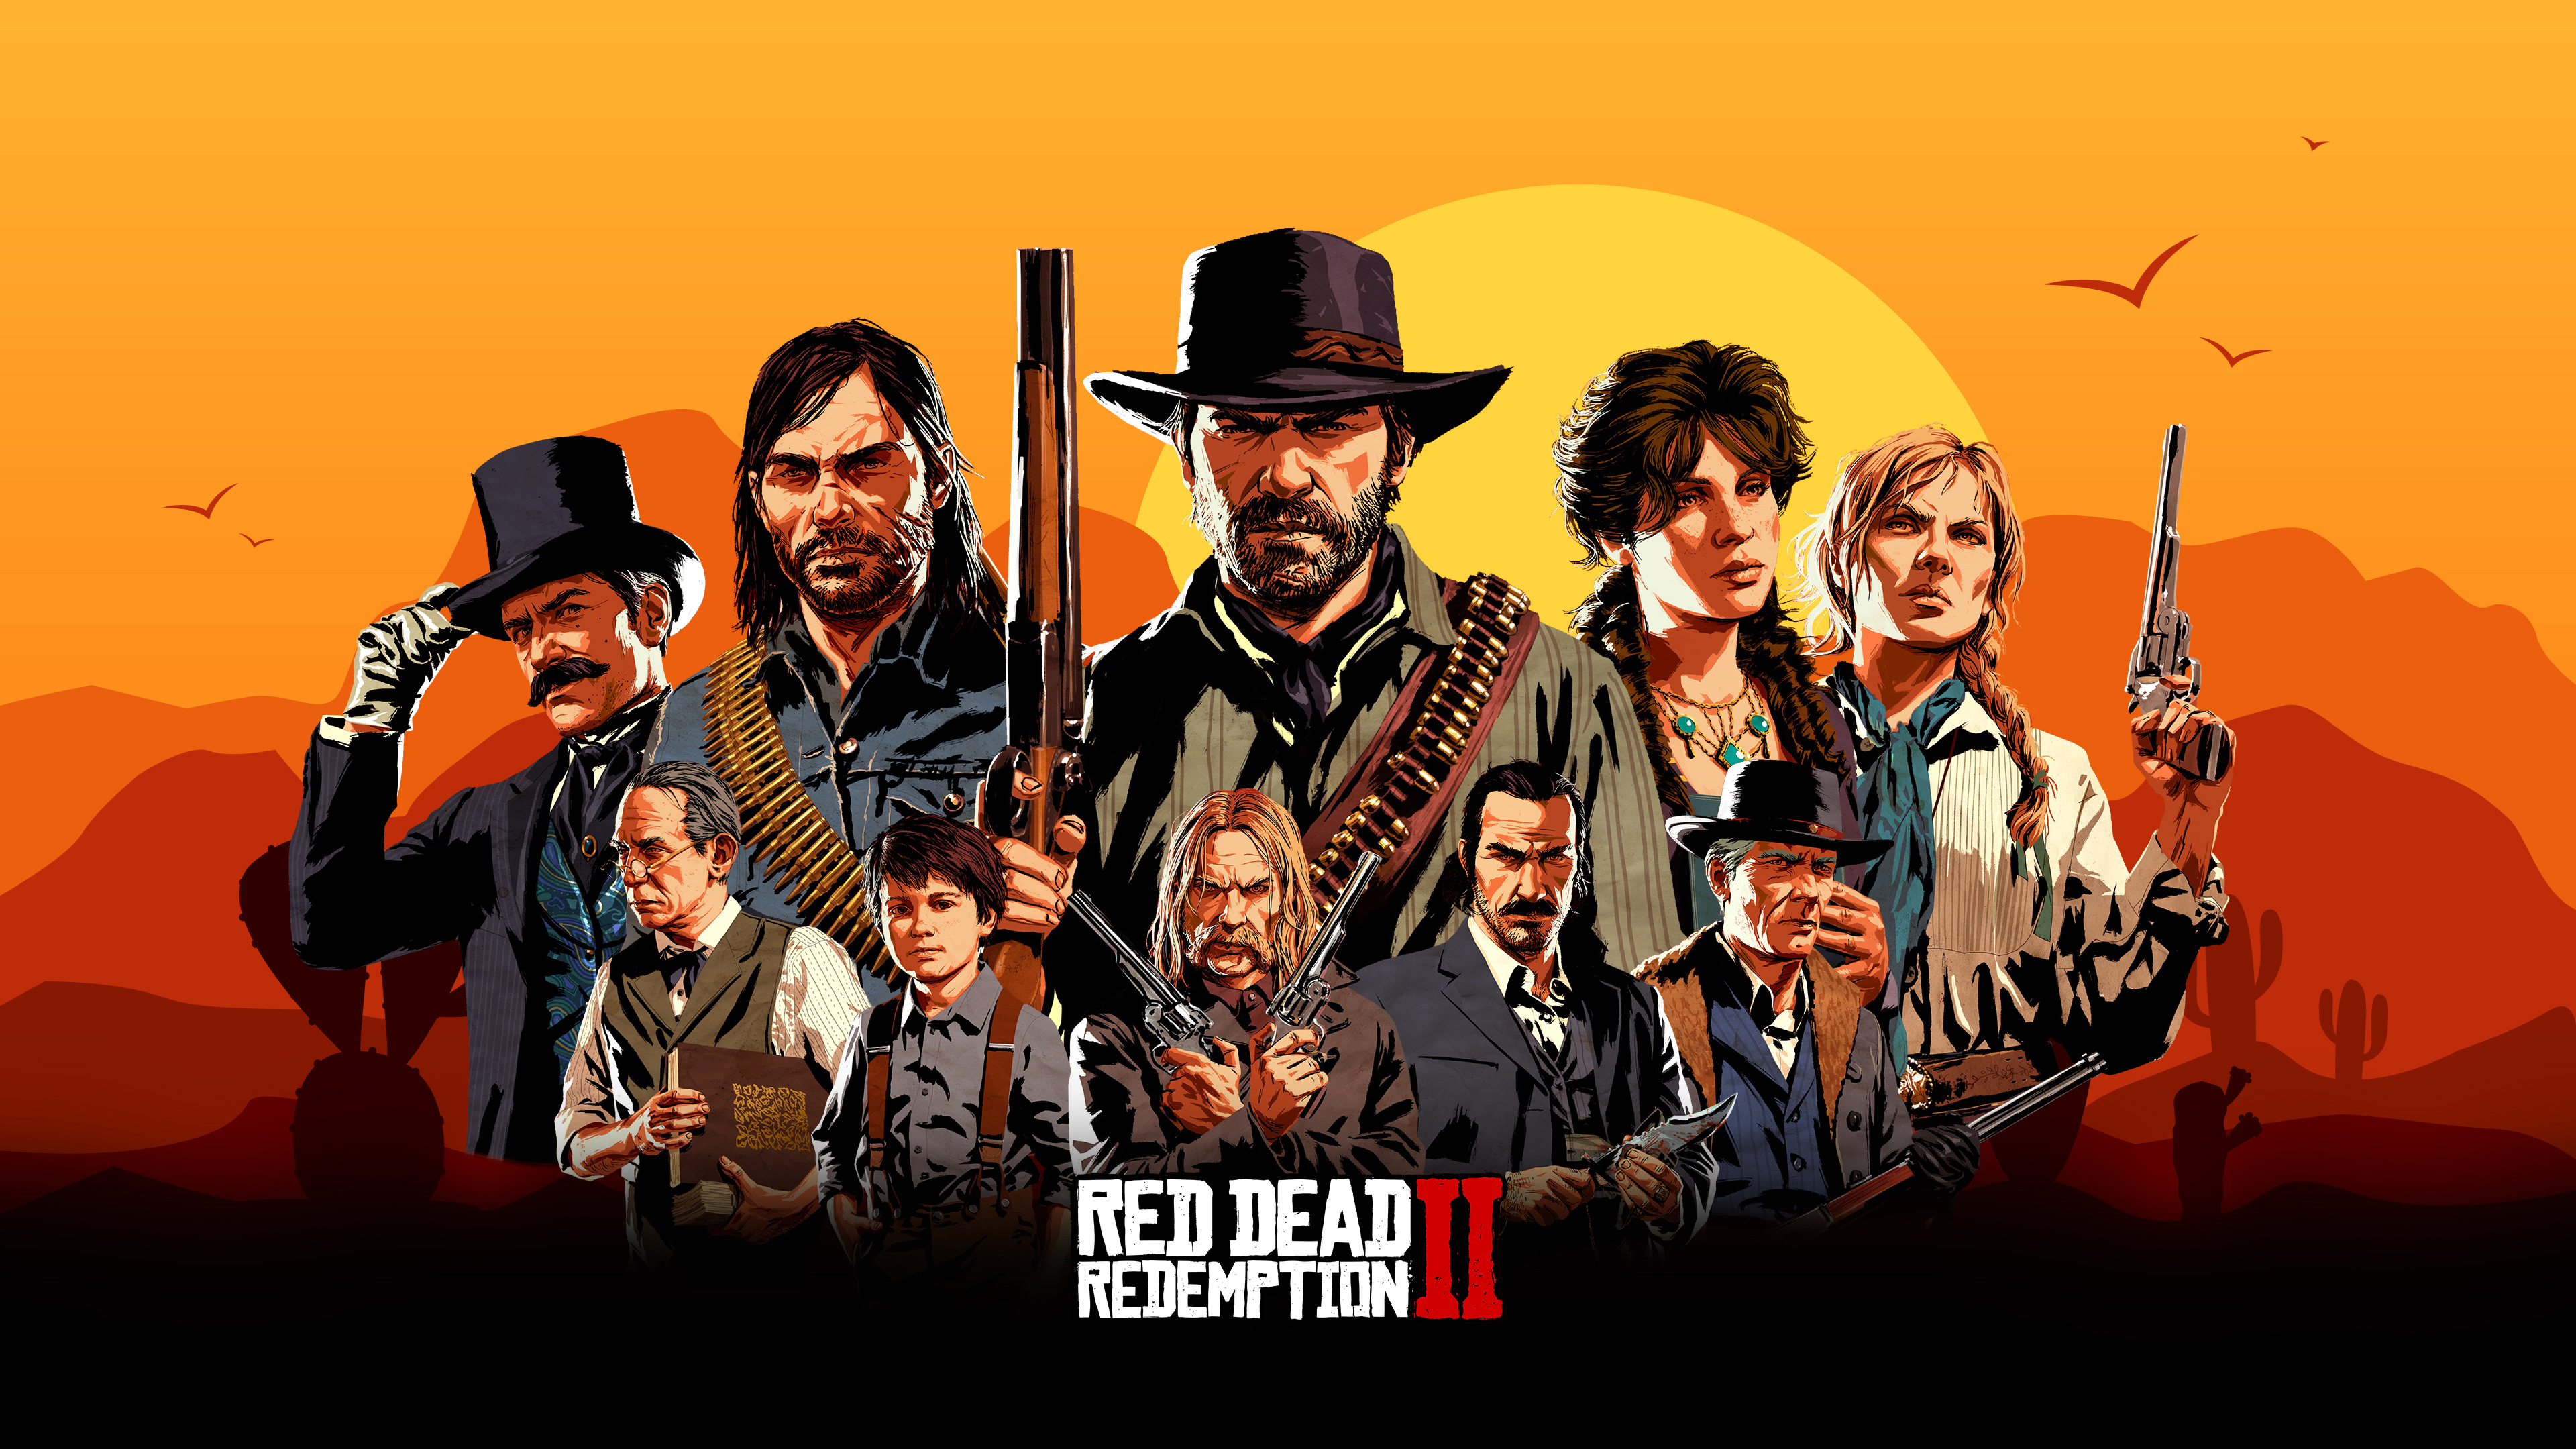 Red Dead Redemption 2 4k Wallpaper: Red Dead Redemption 2 Game Characters, HD Games, 4k